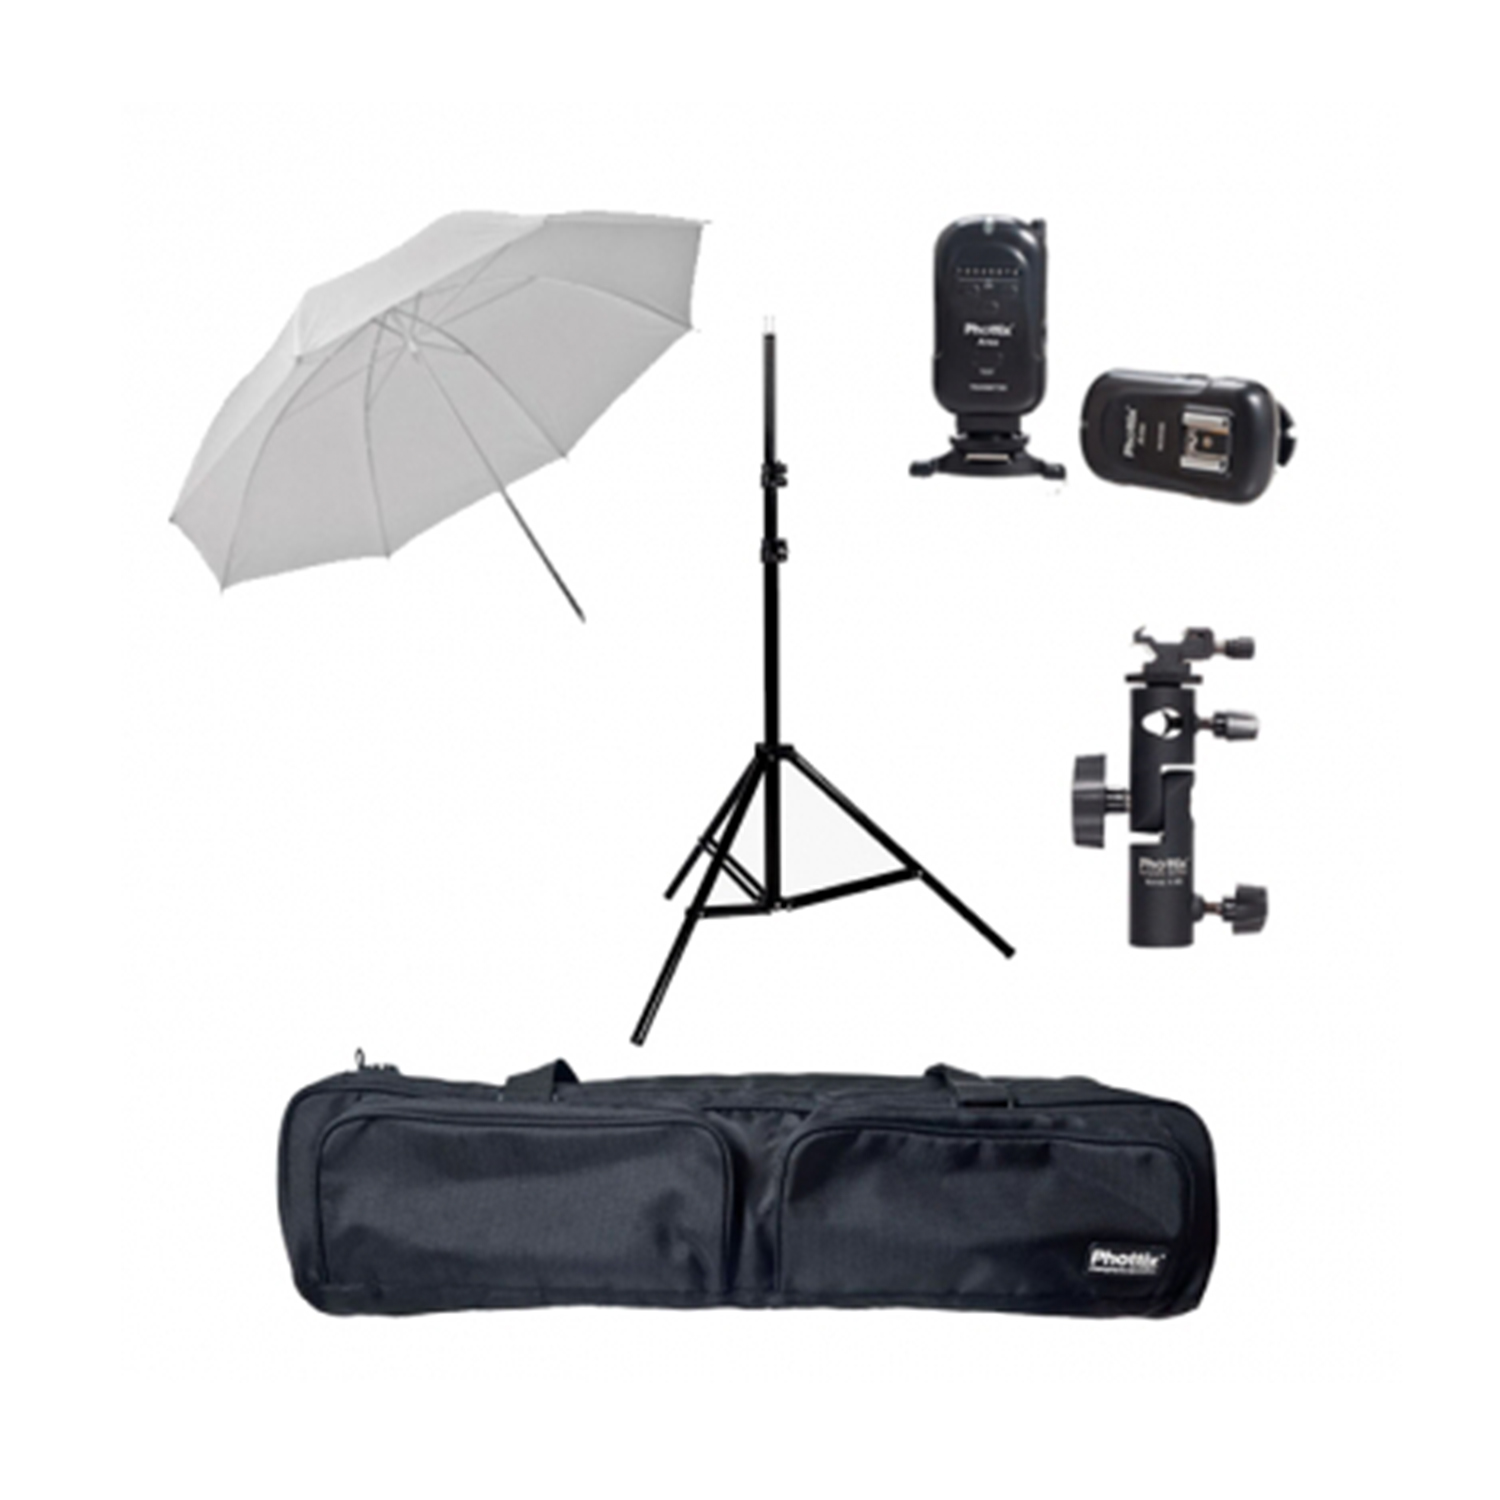 The GPP Small Flash Lighting Kit